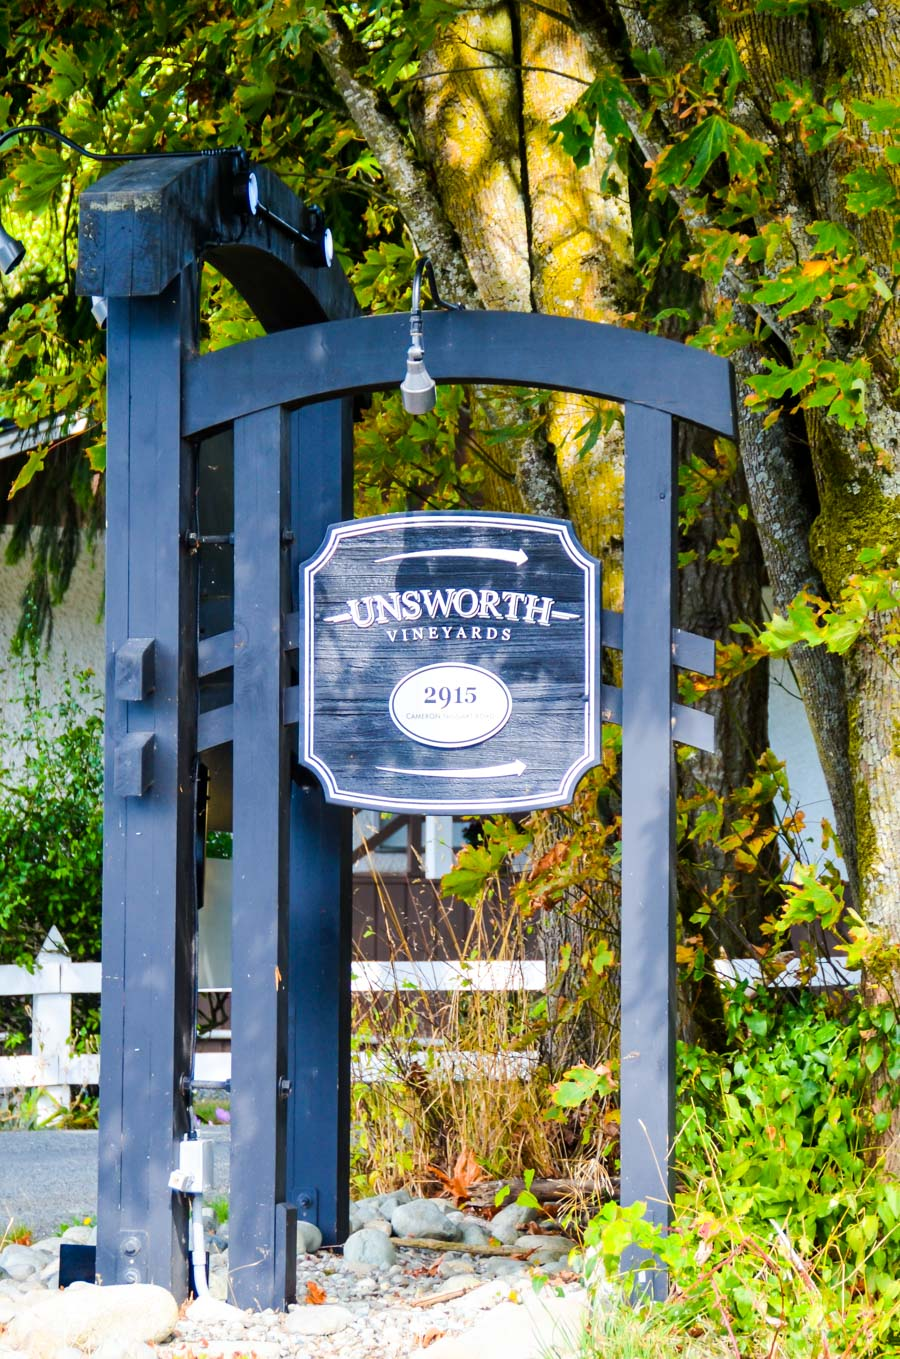 What to Do in Victoria, B.C. Travel Guide | Unsworth Winery